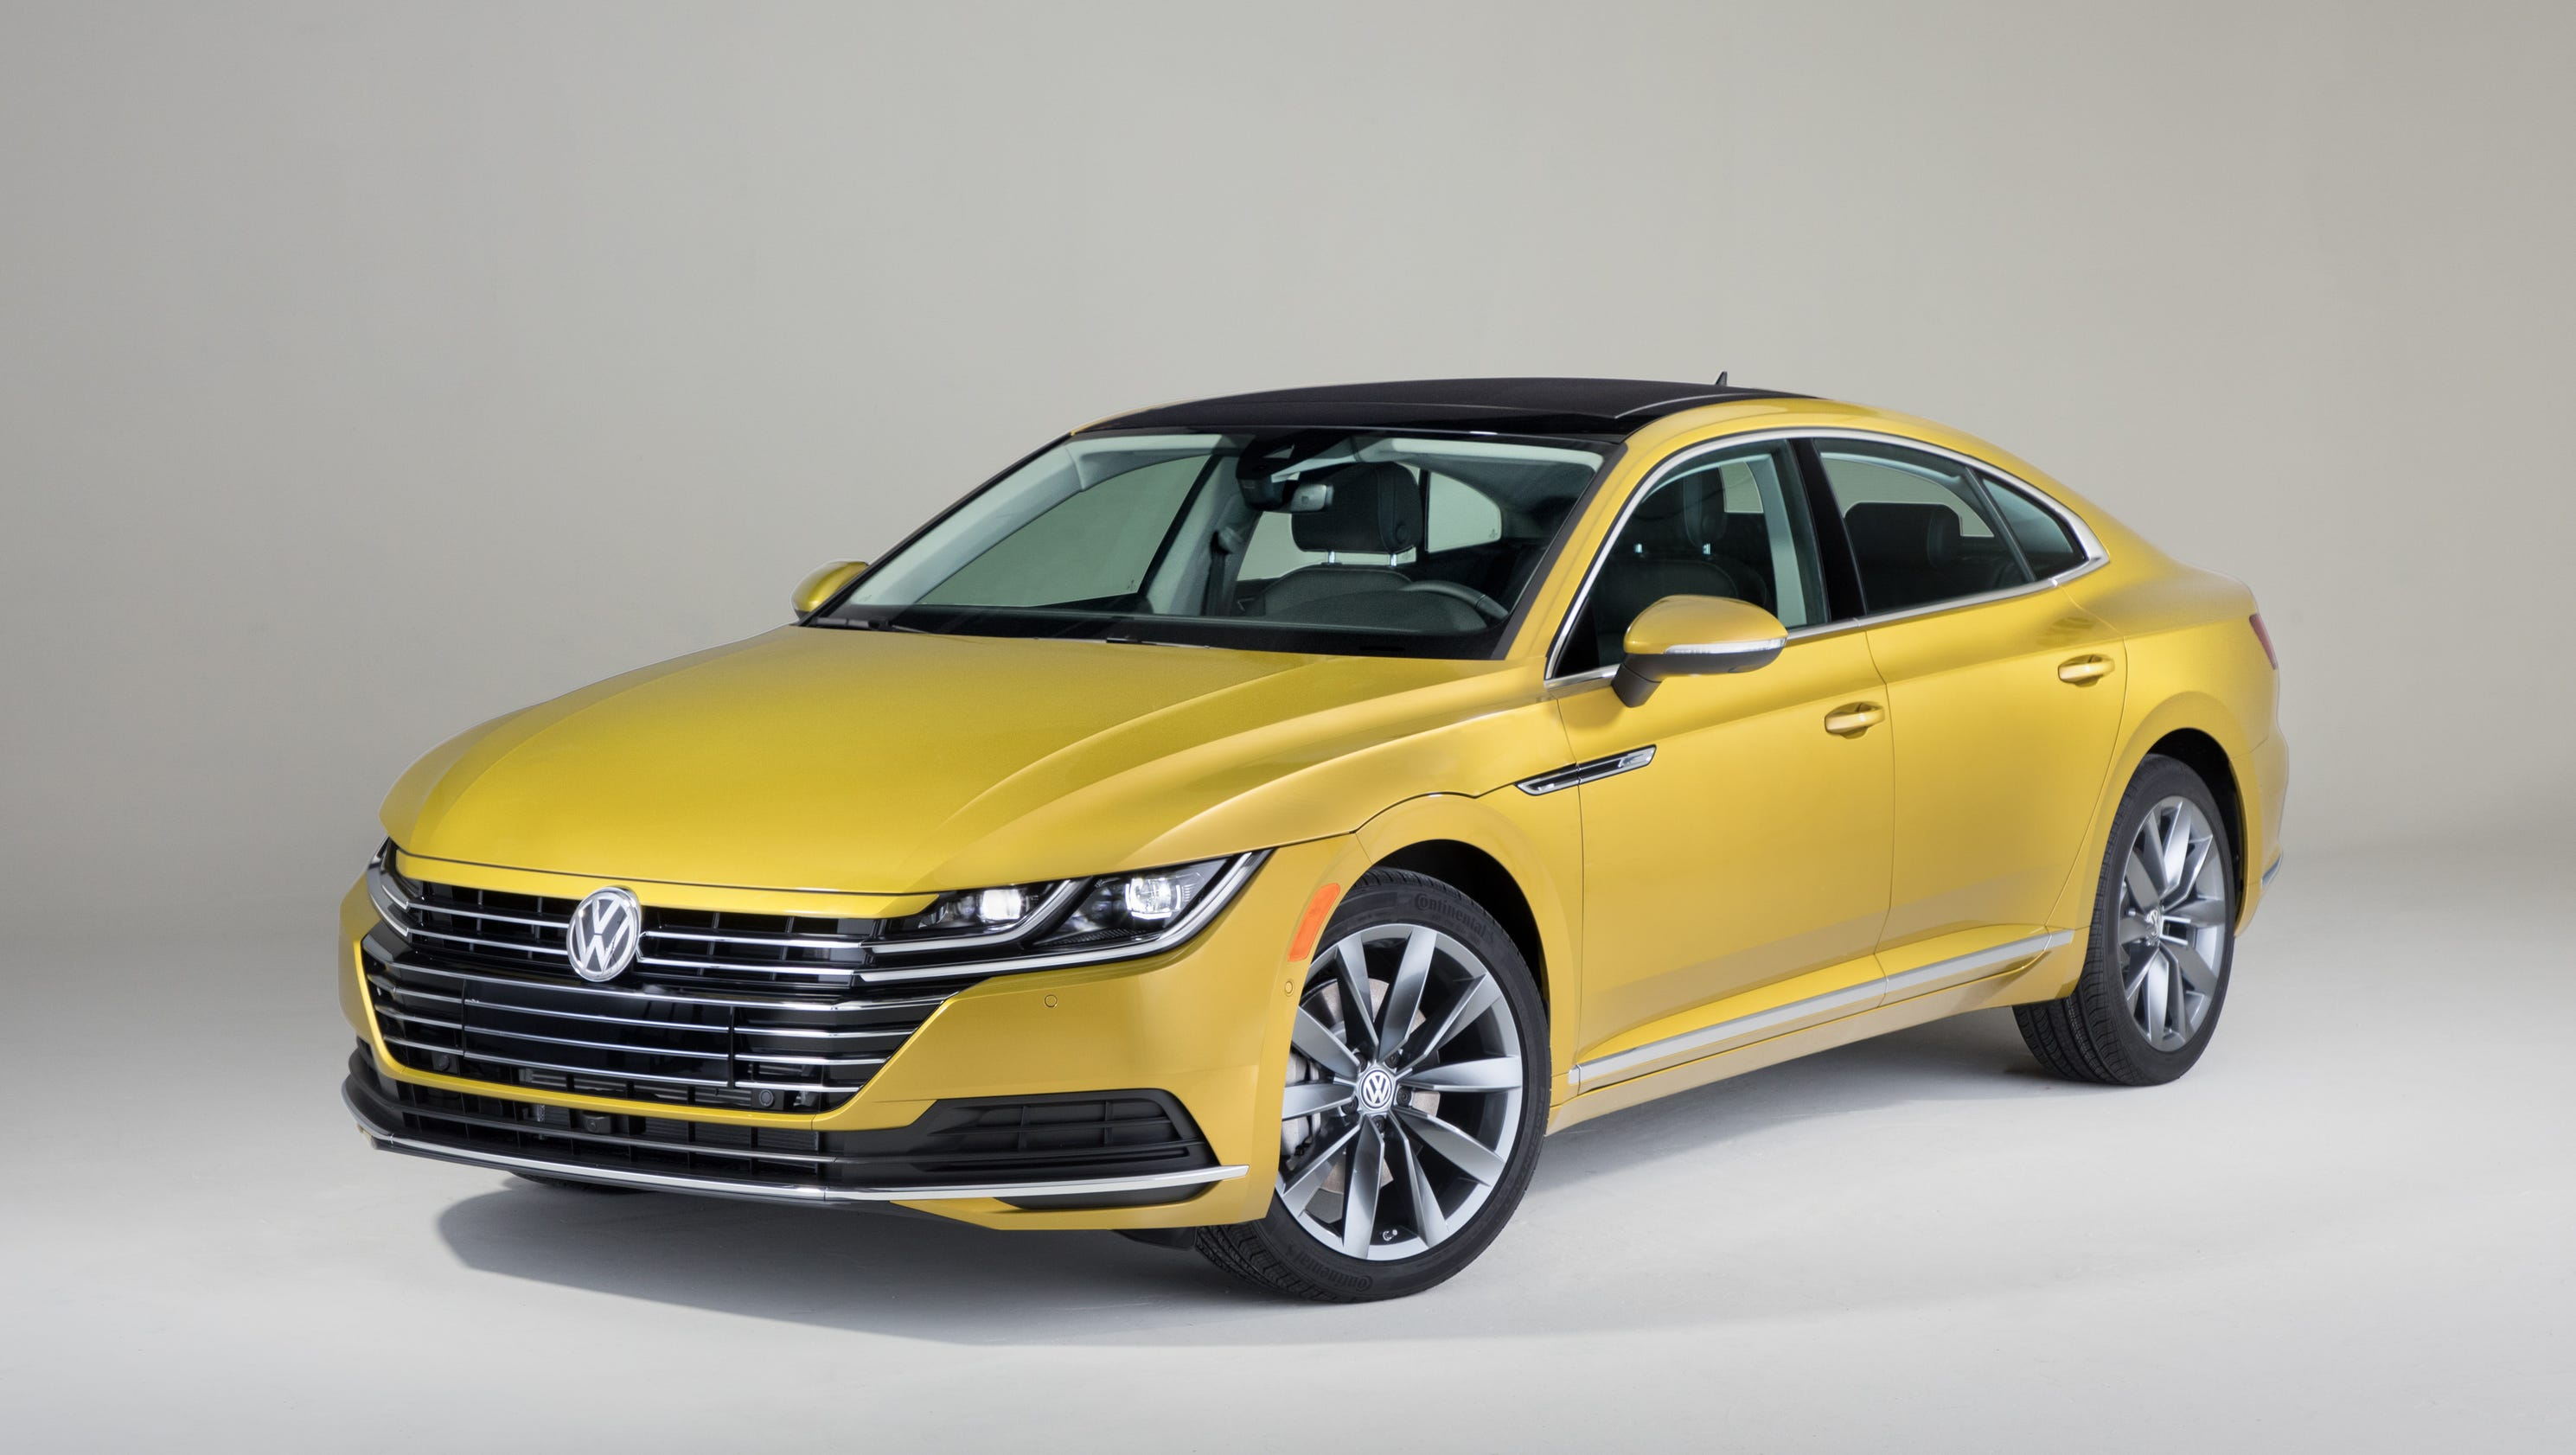 chicago auto show volkswagen reveals 2019 arteon mid size car to replace cc. Black Bedroom Furniture Sets. Home Design Ideas